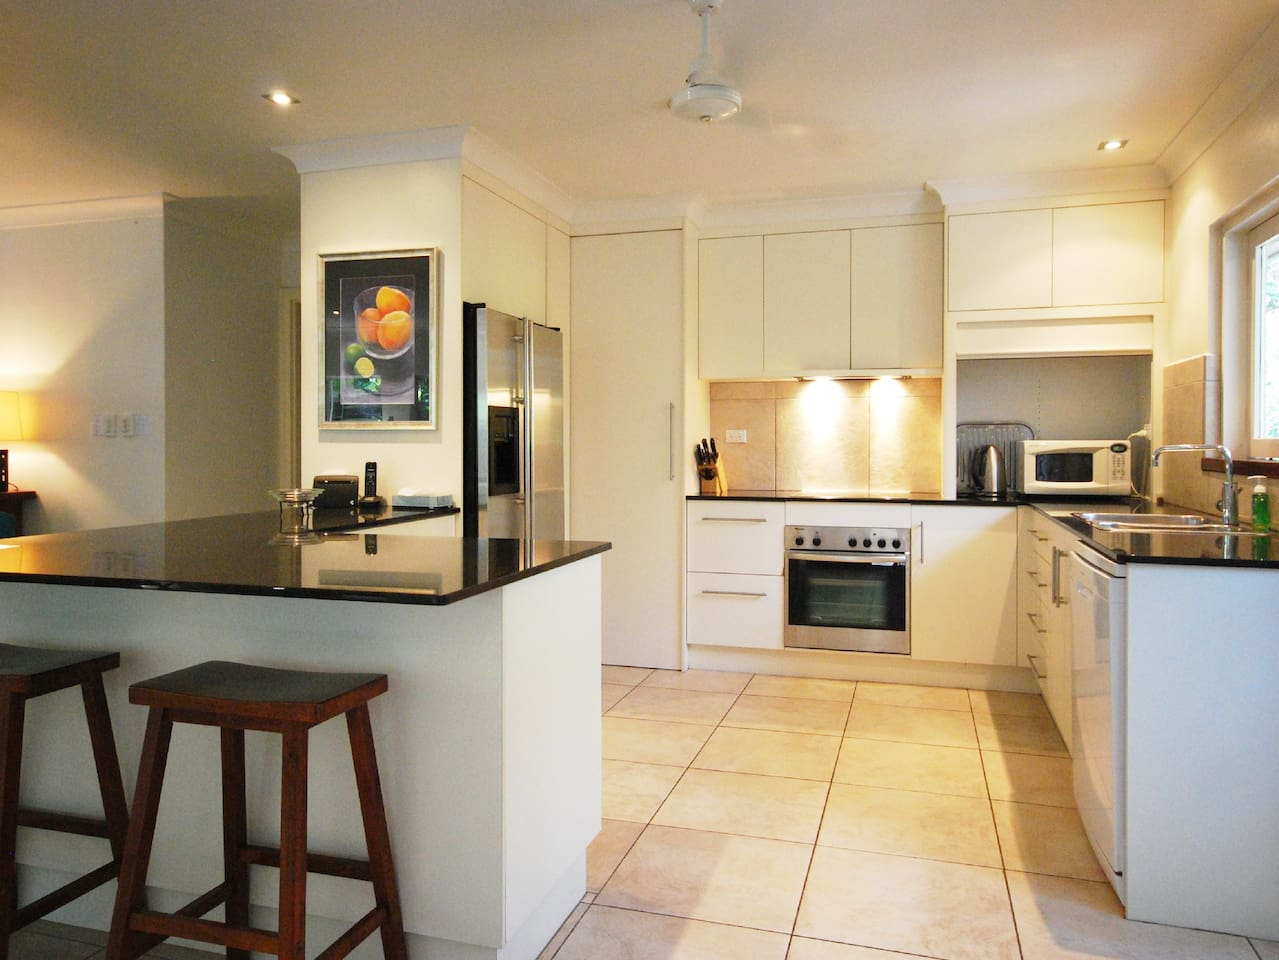 The kitchen is fully stocked with quality appliances and all the crockery, cookware and utensils you will need for your stay